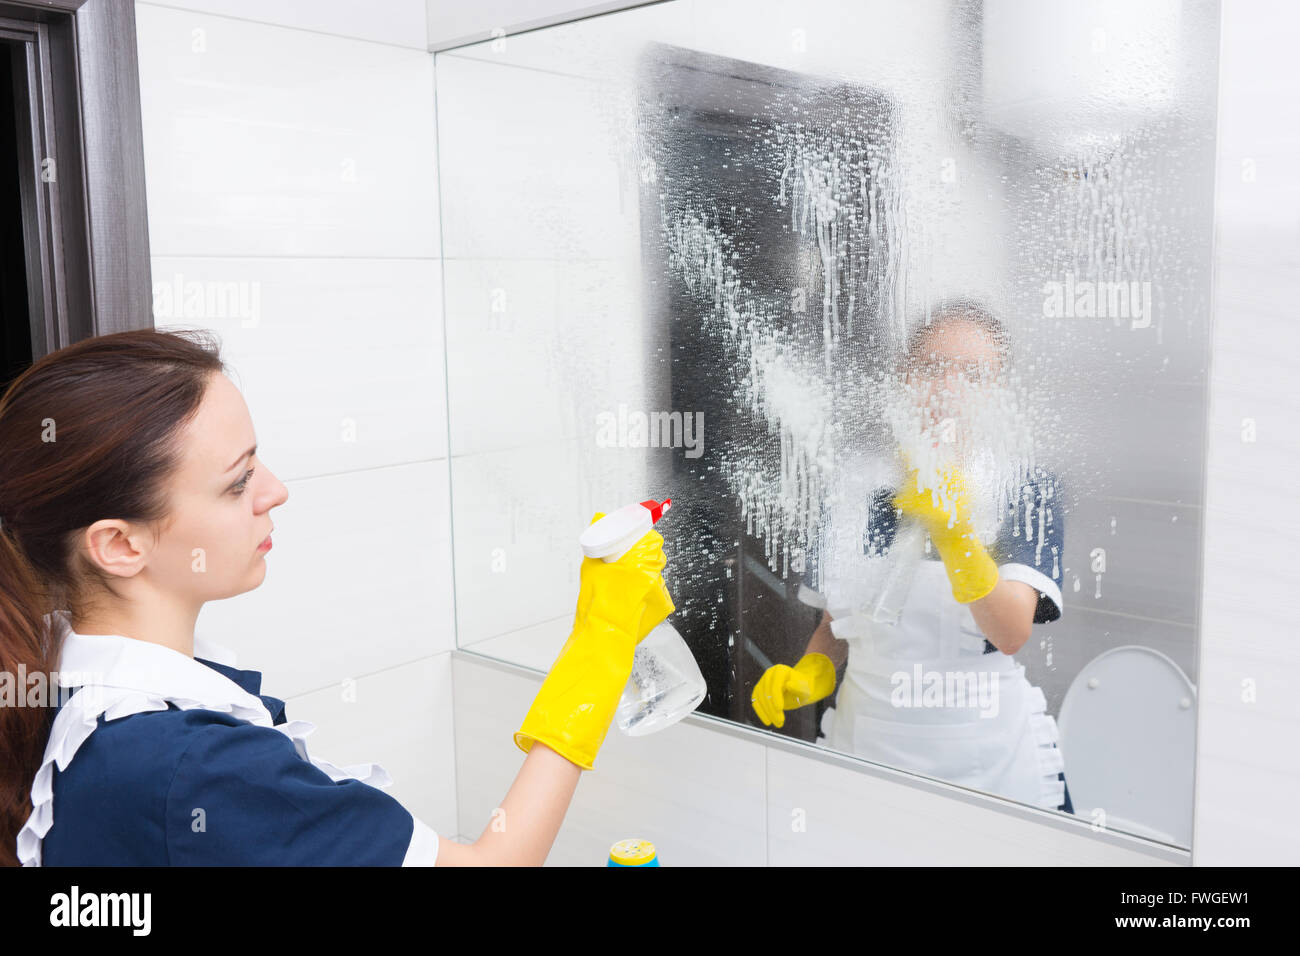 Housekeeper cleaning a wall mirror in a bathroom spraying it with detergent, close up side view with reflection - Stock Image